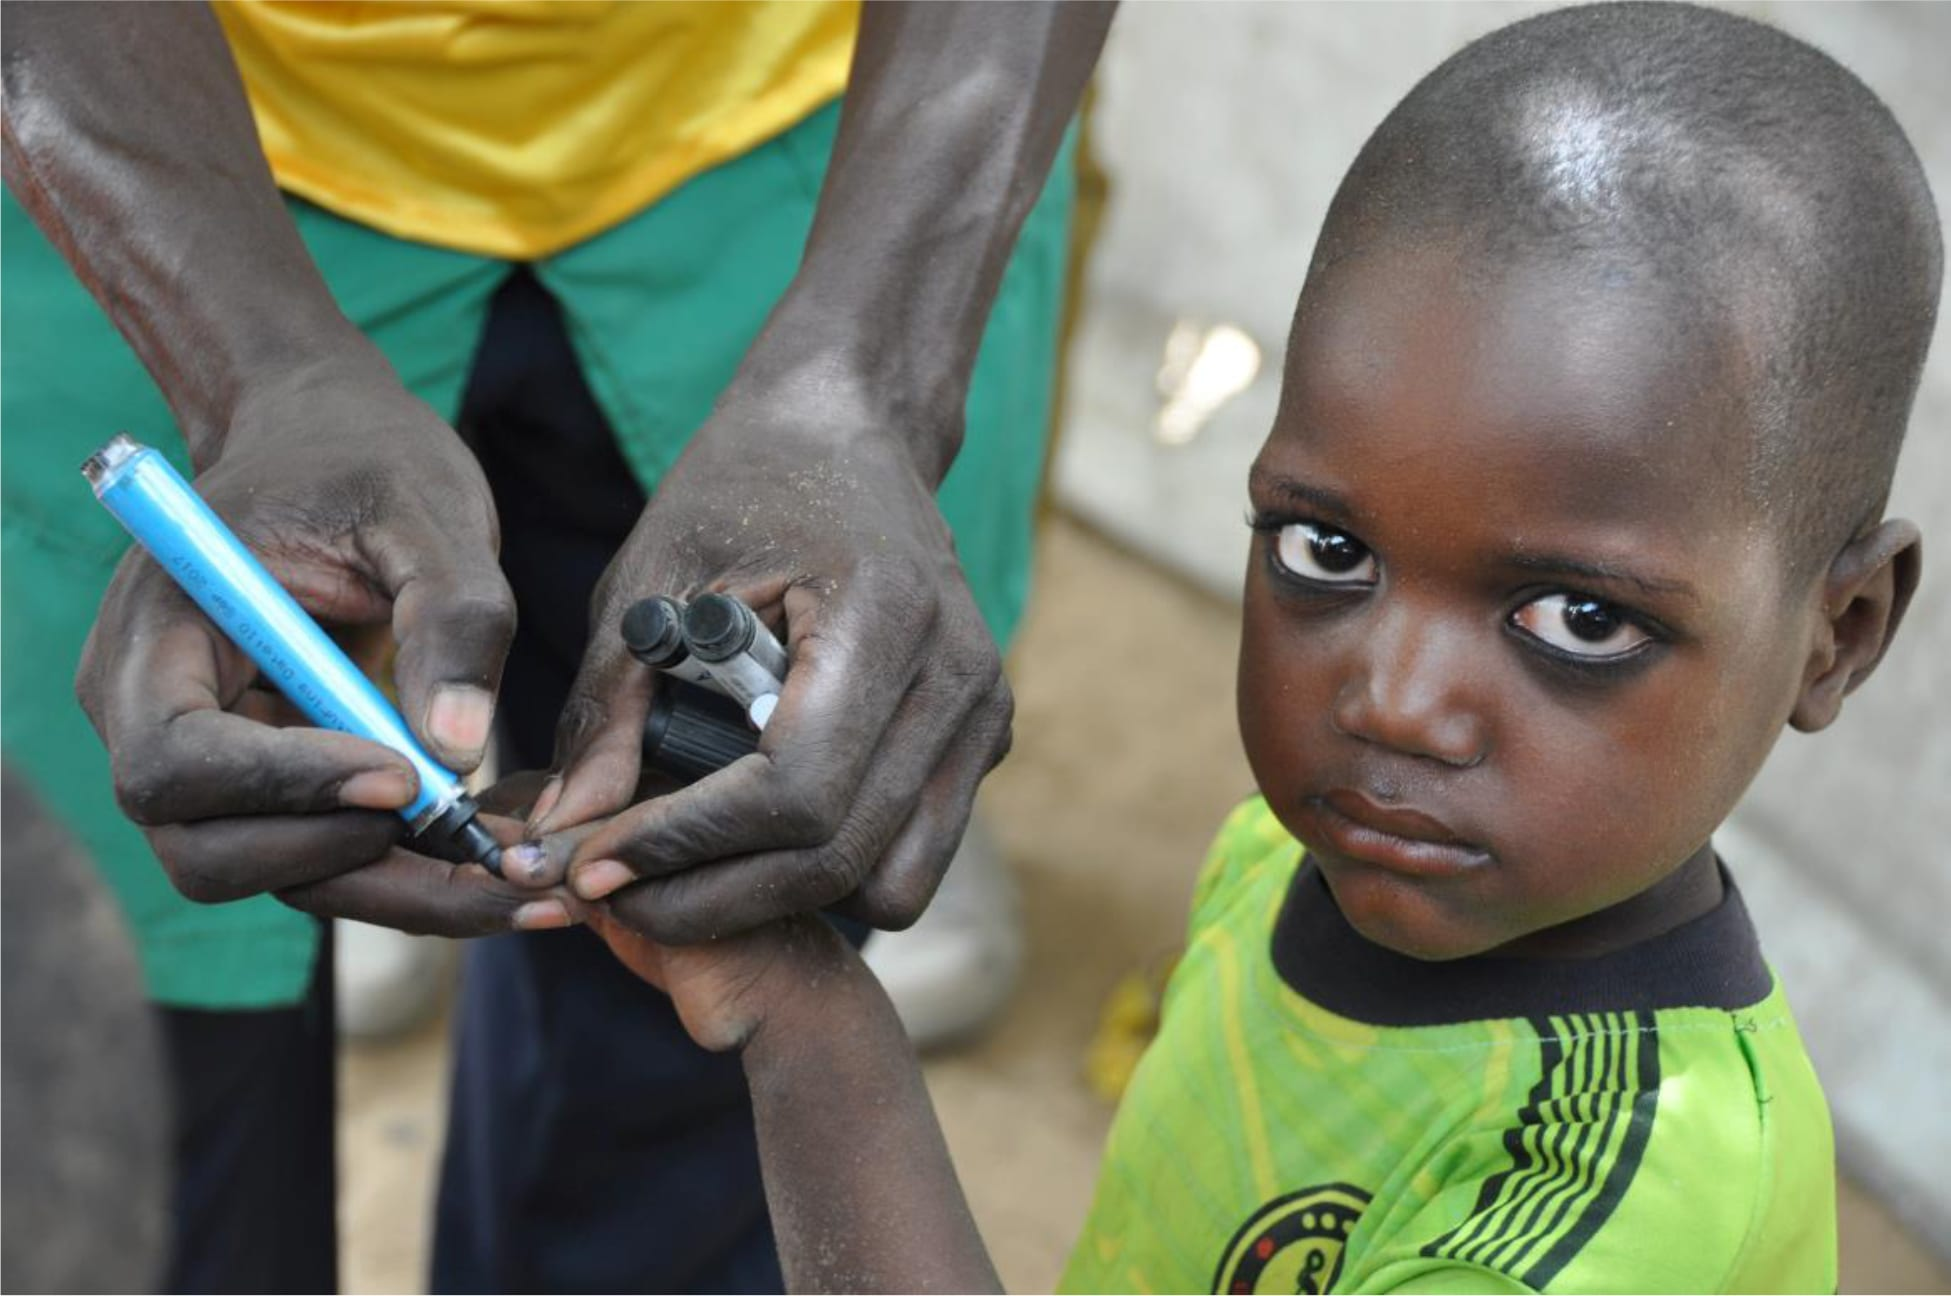 a child's finger marked to indicate being vaccinated in Chad